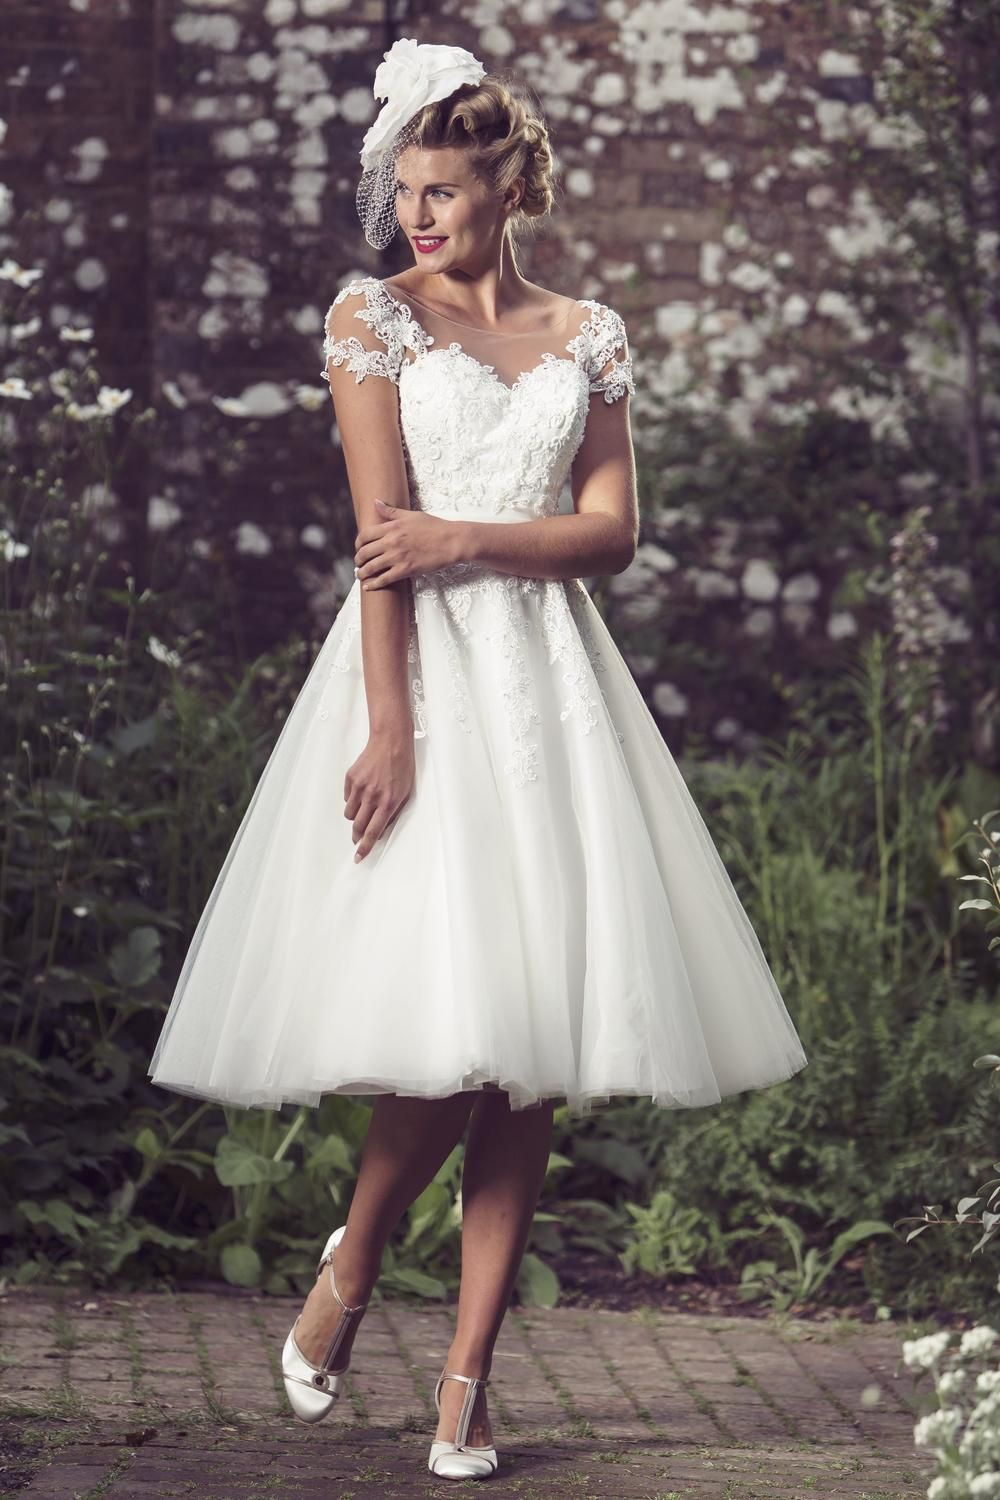 Demi by Brighton Belle from Lori G Derby